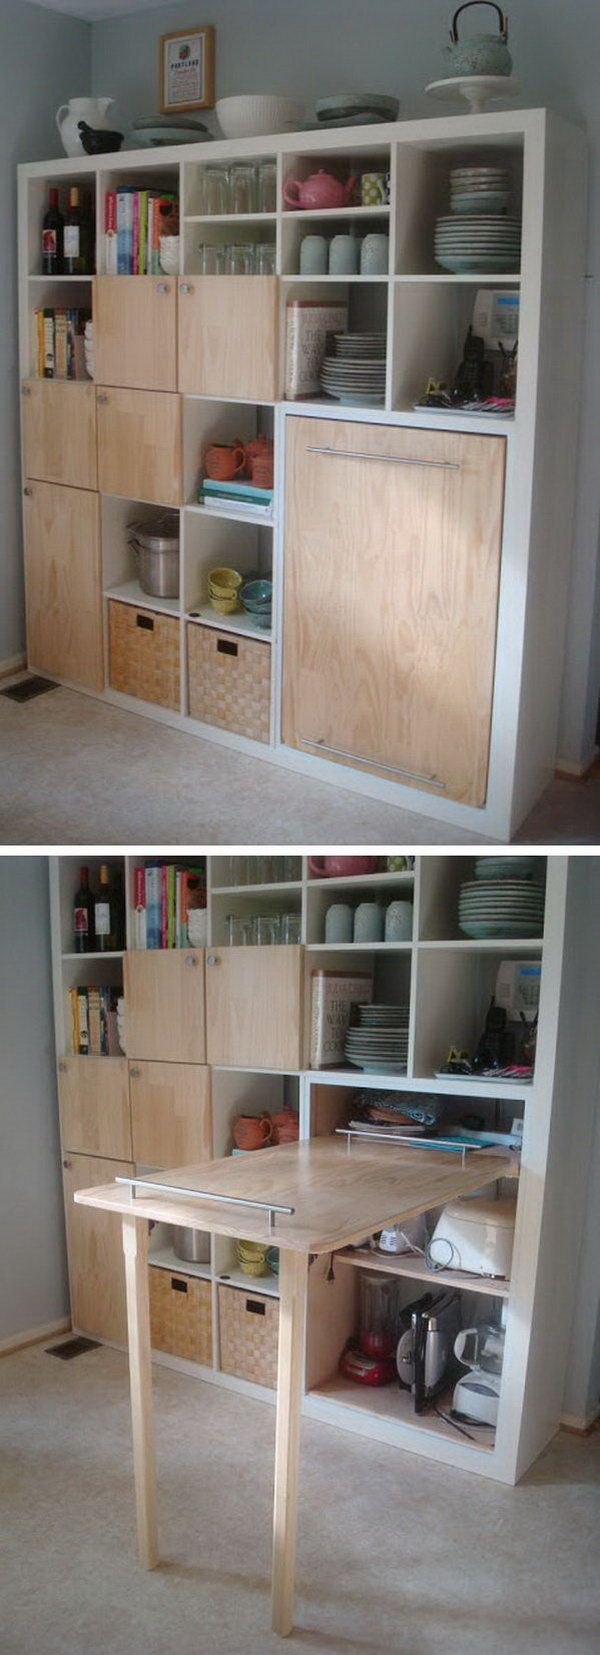 Kitchen Storage Ideas Best 25 Clever Kitchen Storage Ideas On Pinterest  Clever